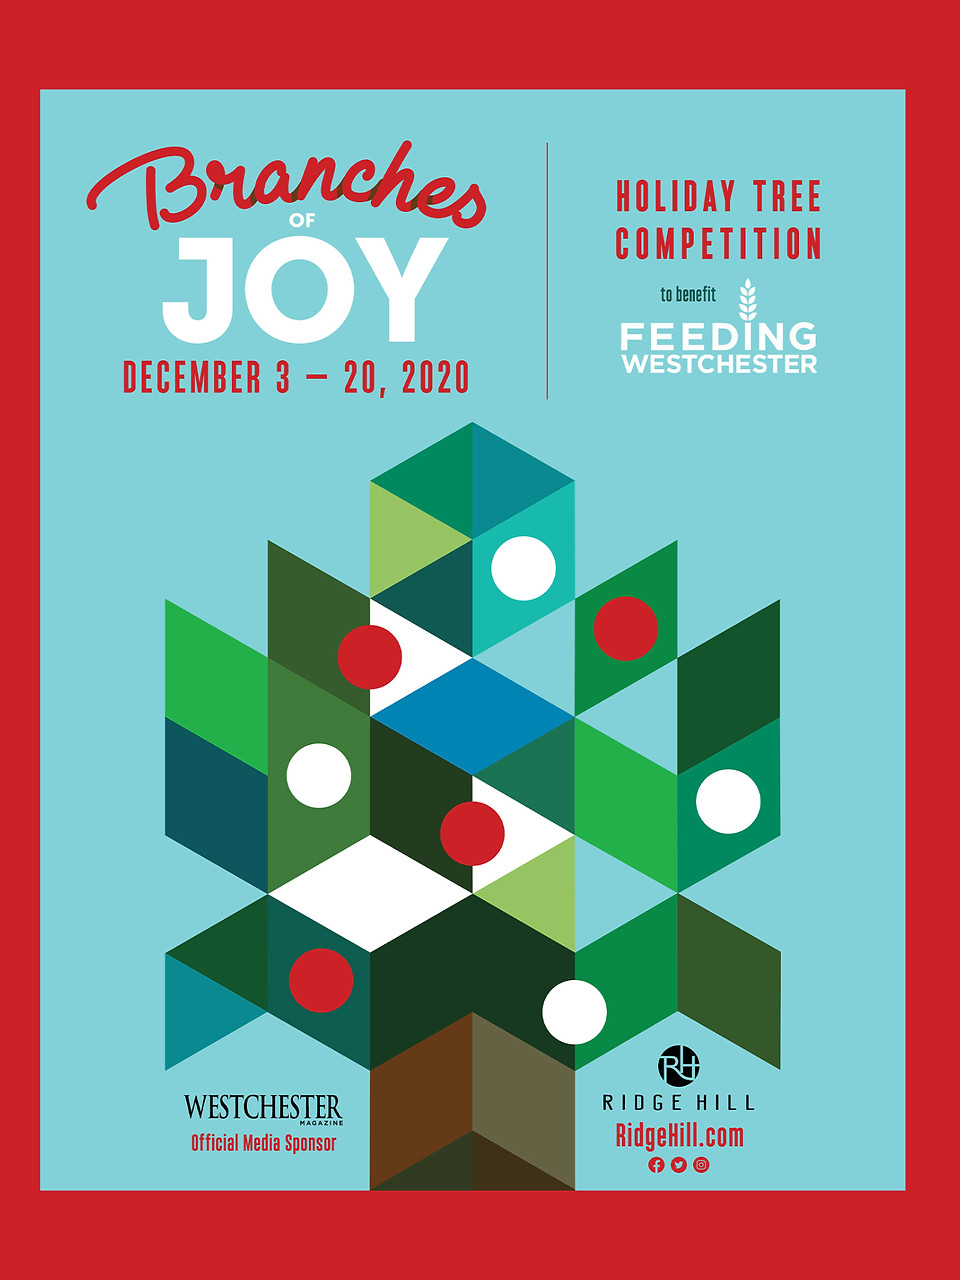 Branches of Joy Poster